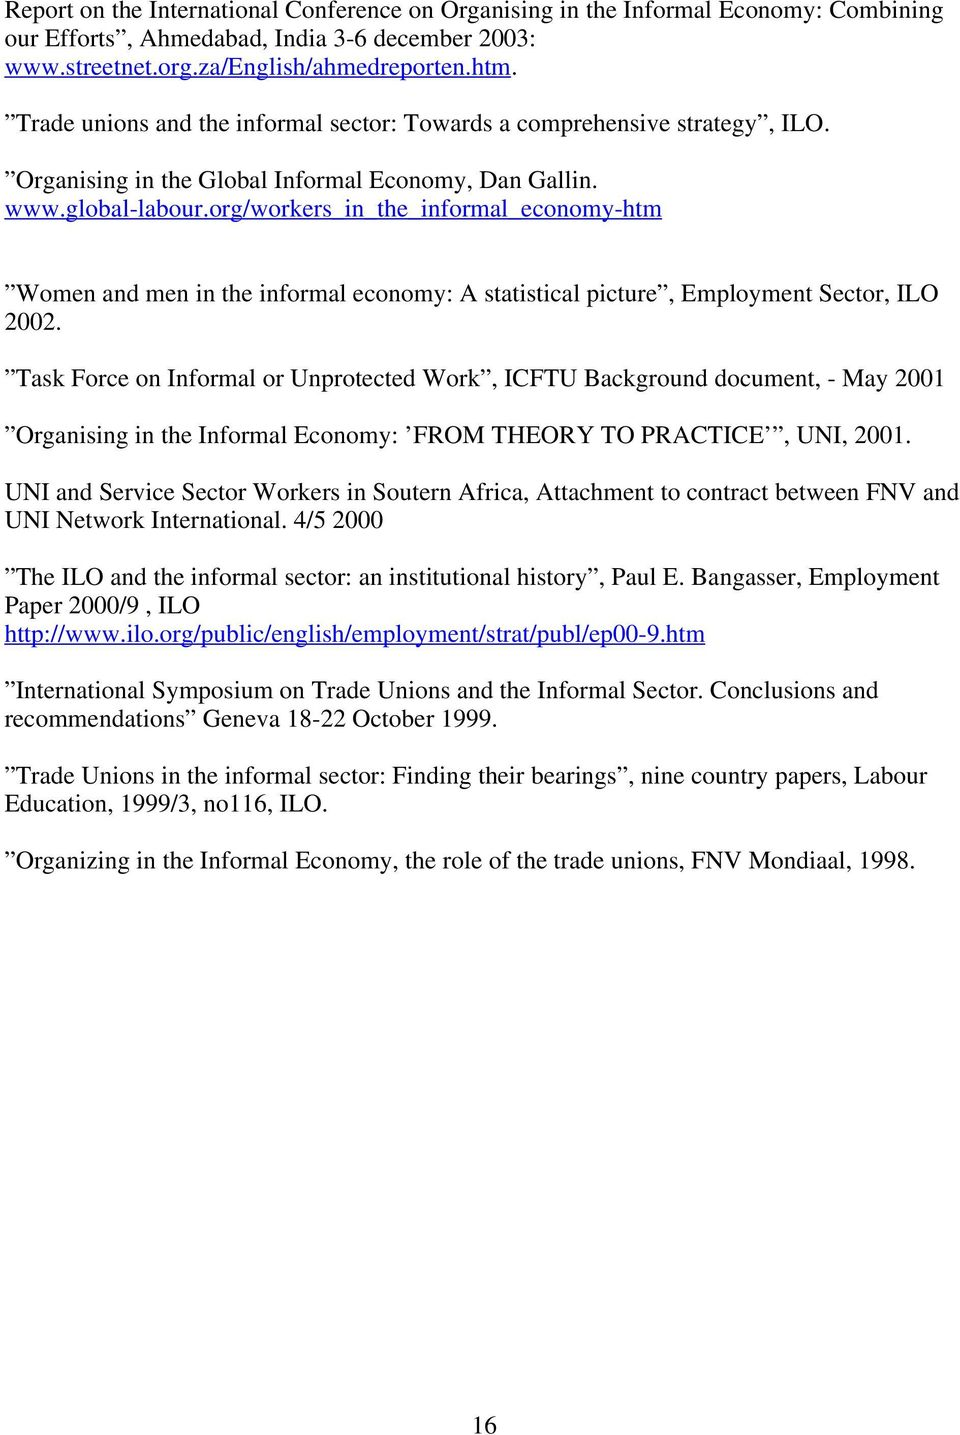 org/workers_in_the_informal_economy-htm Women and men in the informal economy: A statistical picture, Employment Sector, ILO 2002.